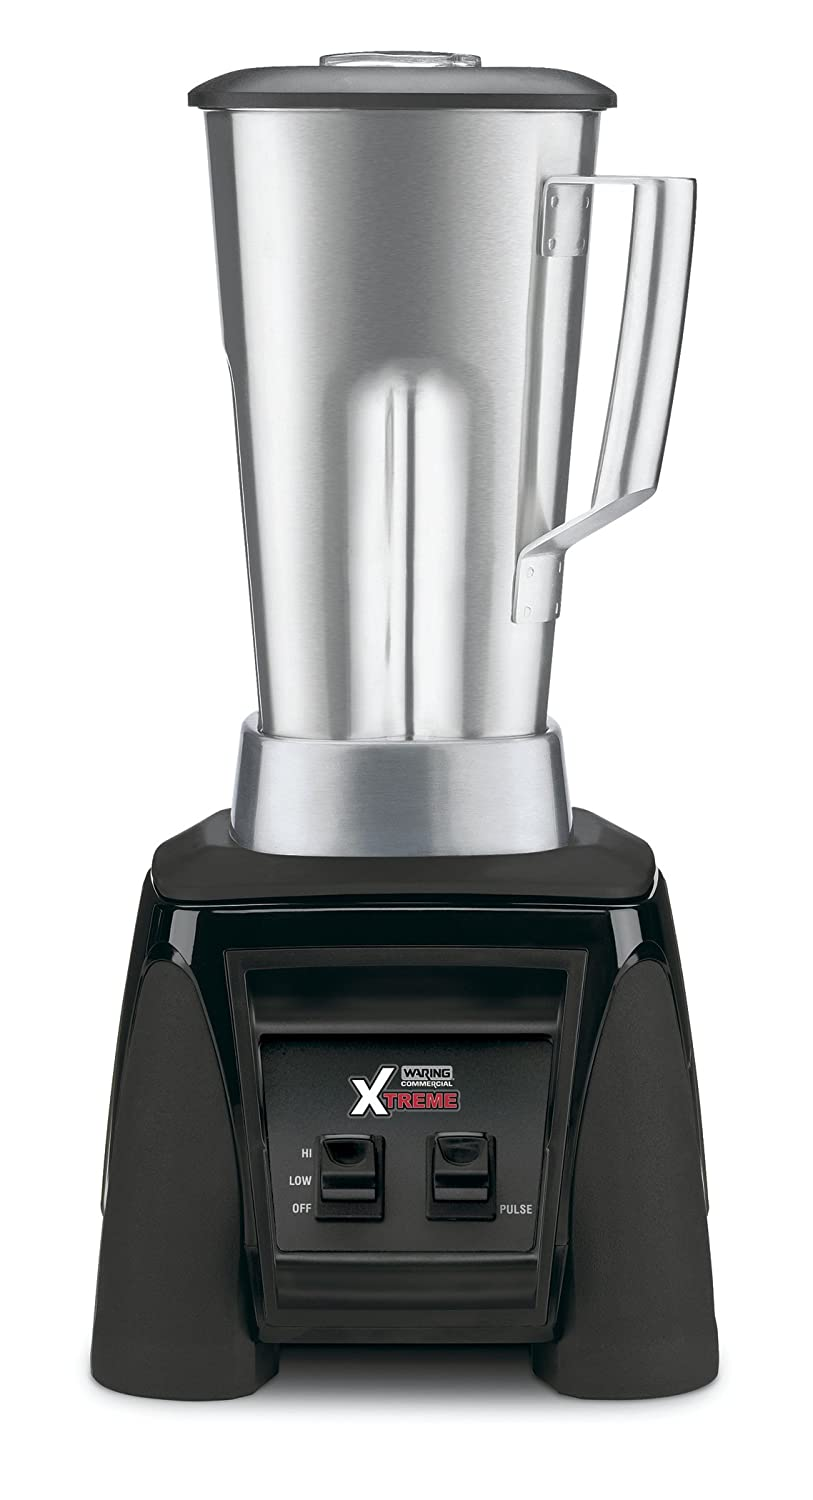 Waring Commercial MX1000XTS Xtreme Hi-Power Blender with Stainless Steel Container, 64-Ounce